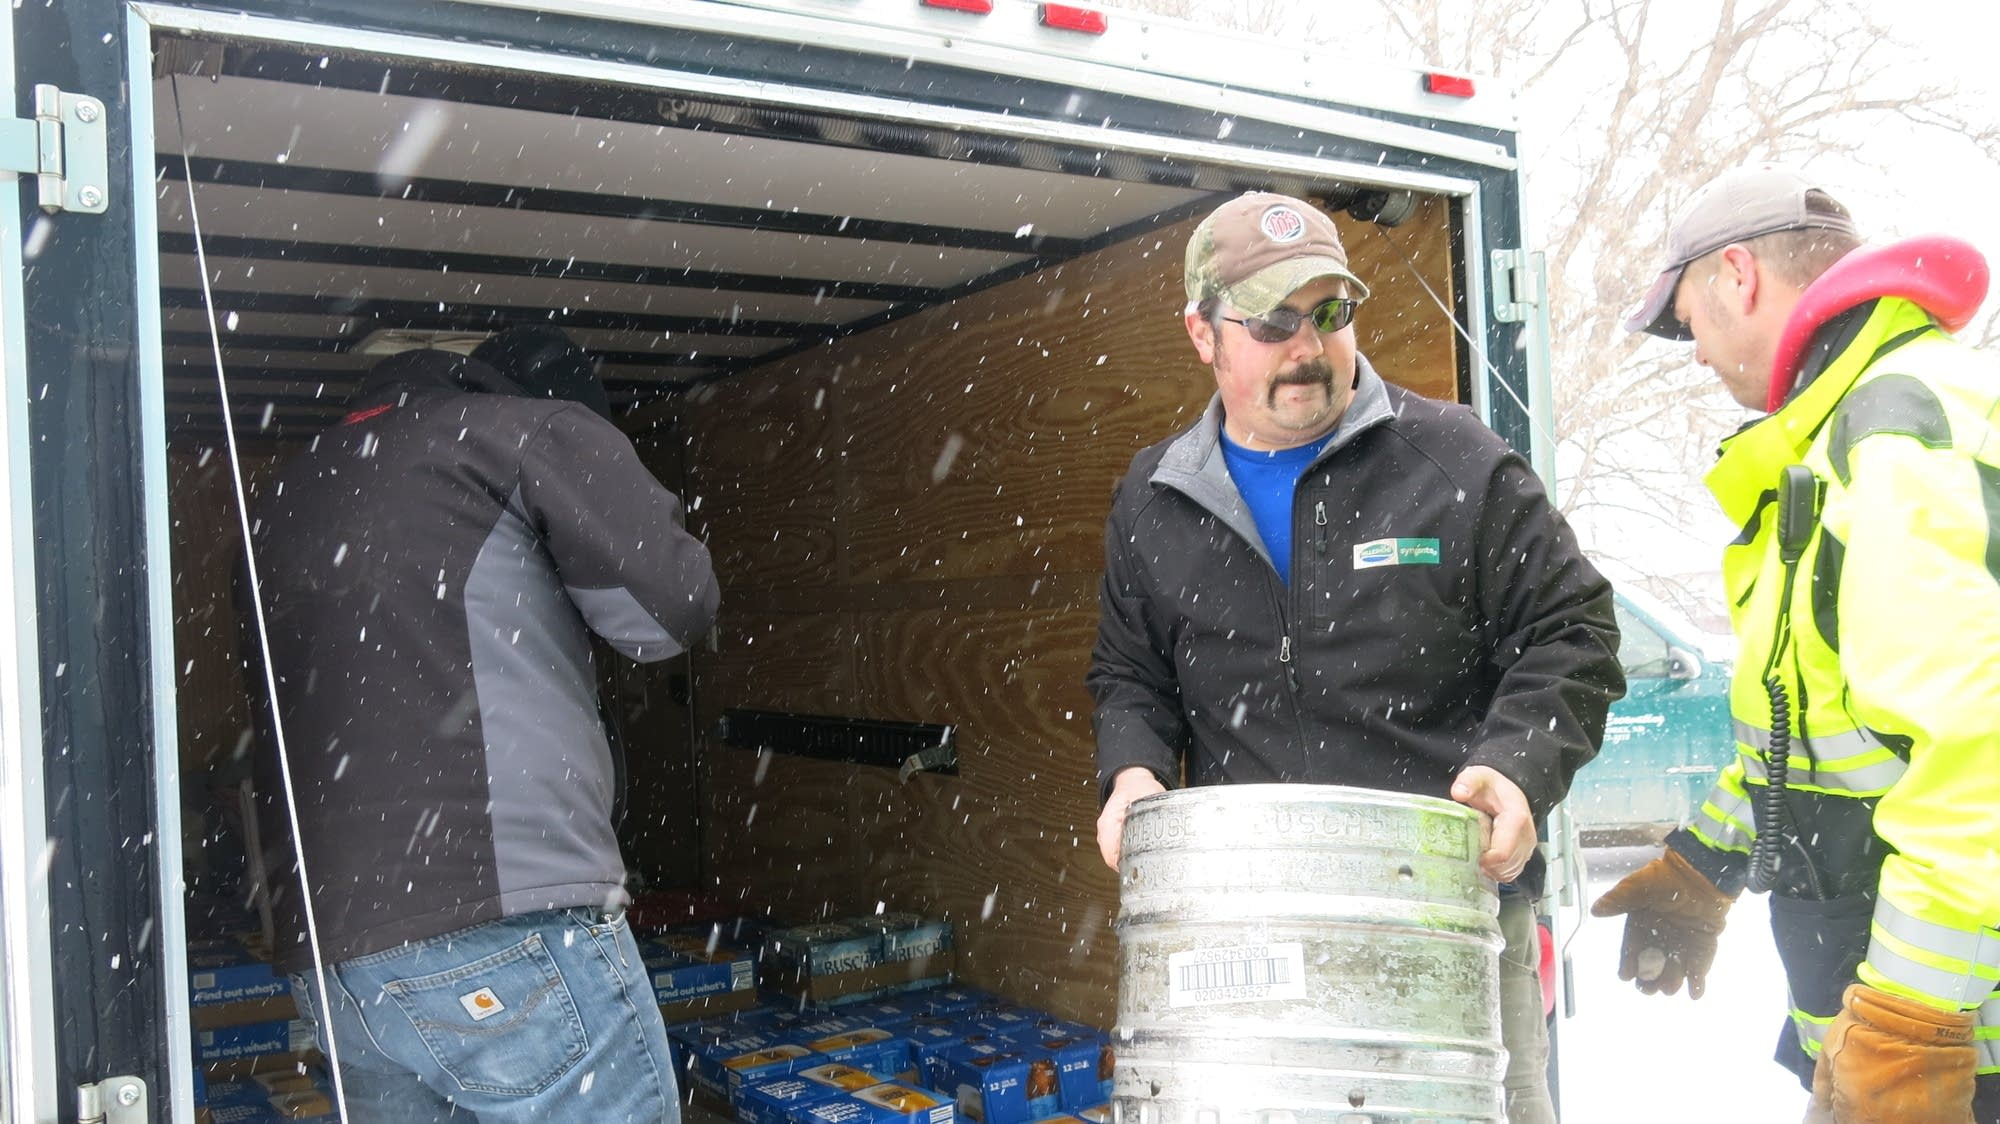 Tim Solem moves a keg of beer into Jamieson's Bar in Oslo, Minn.